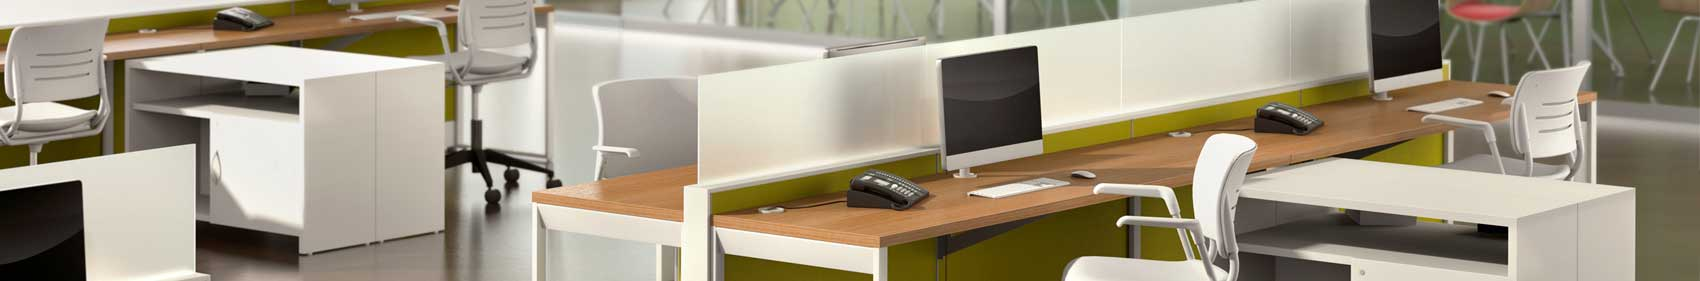 About Brownsworth office furniture design and installation